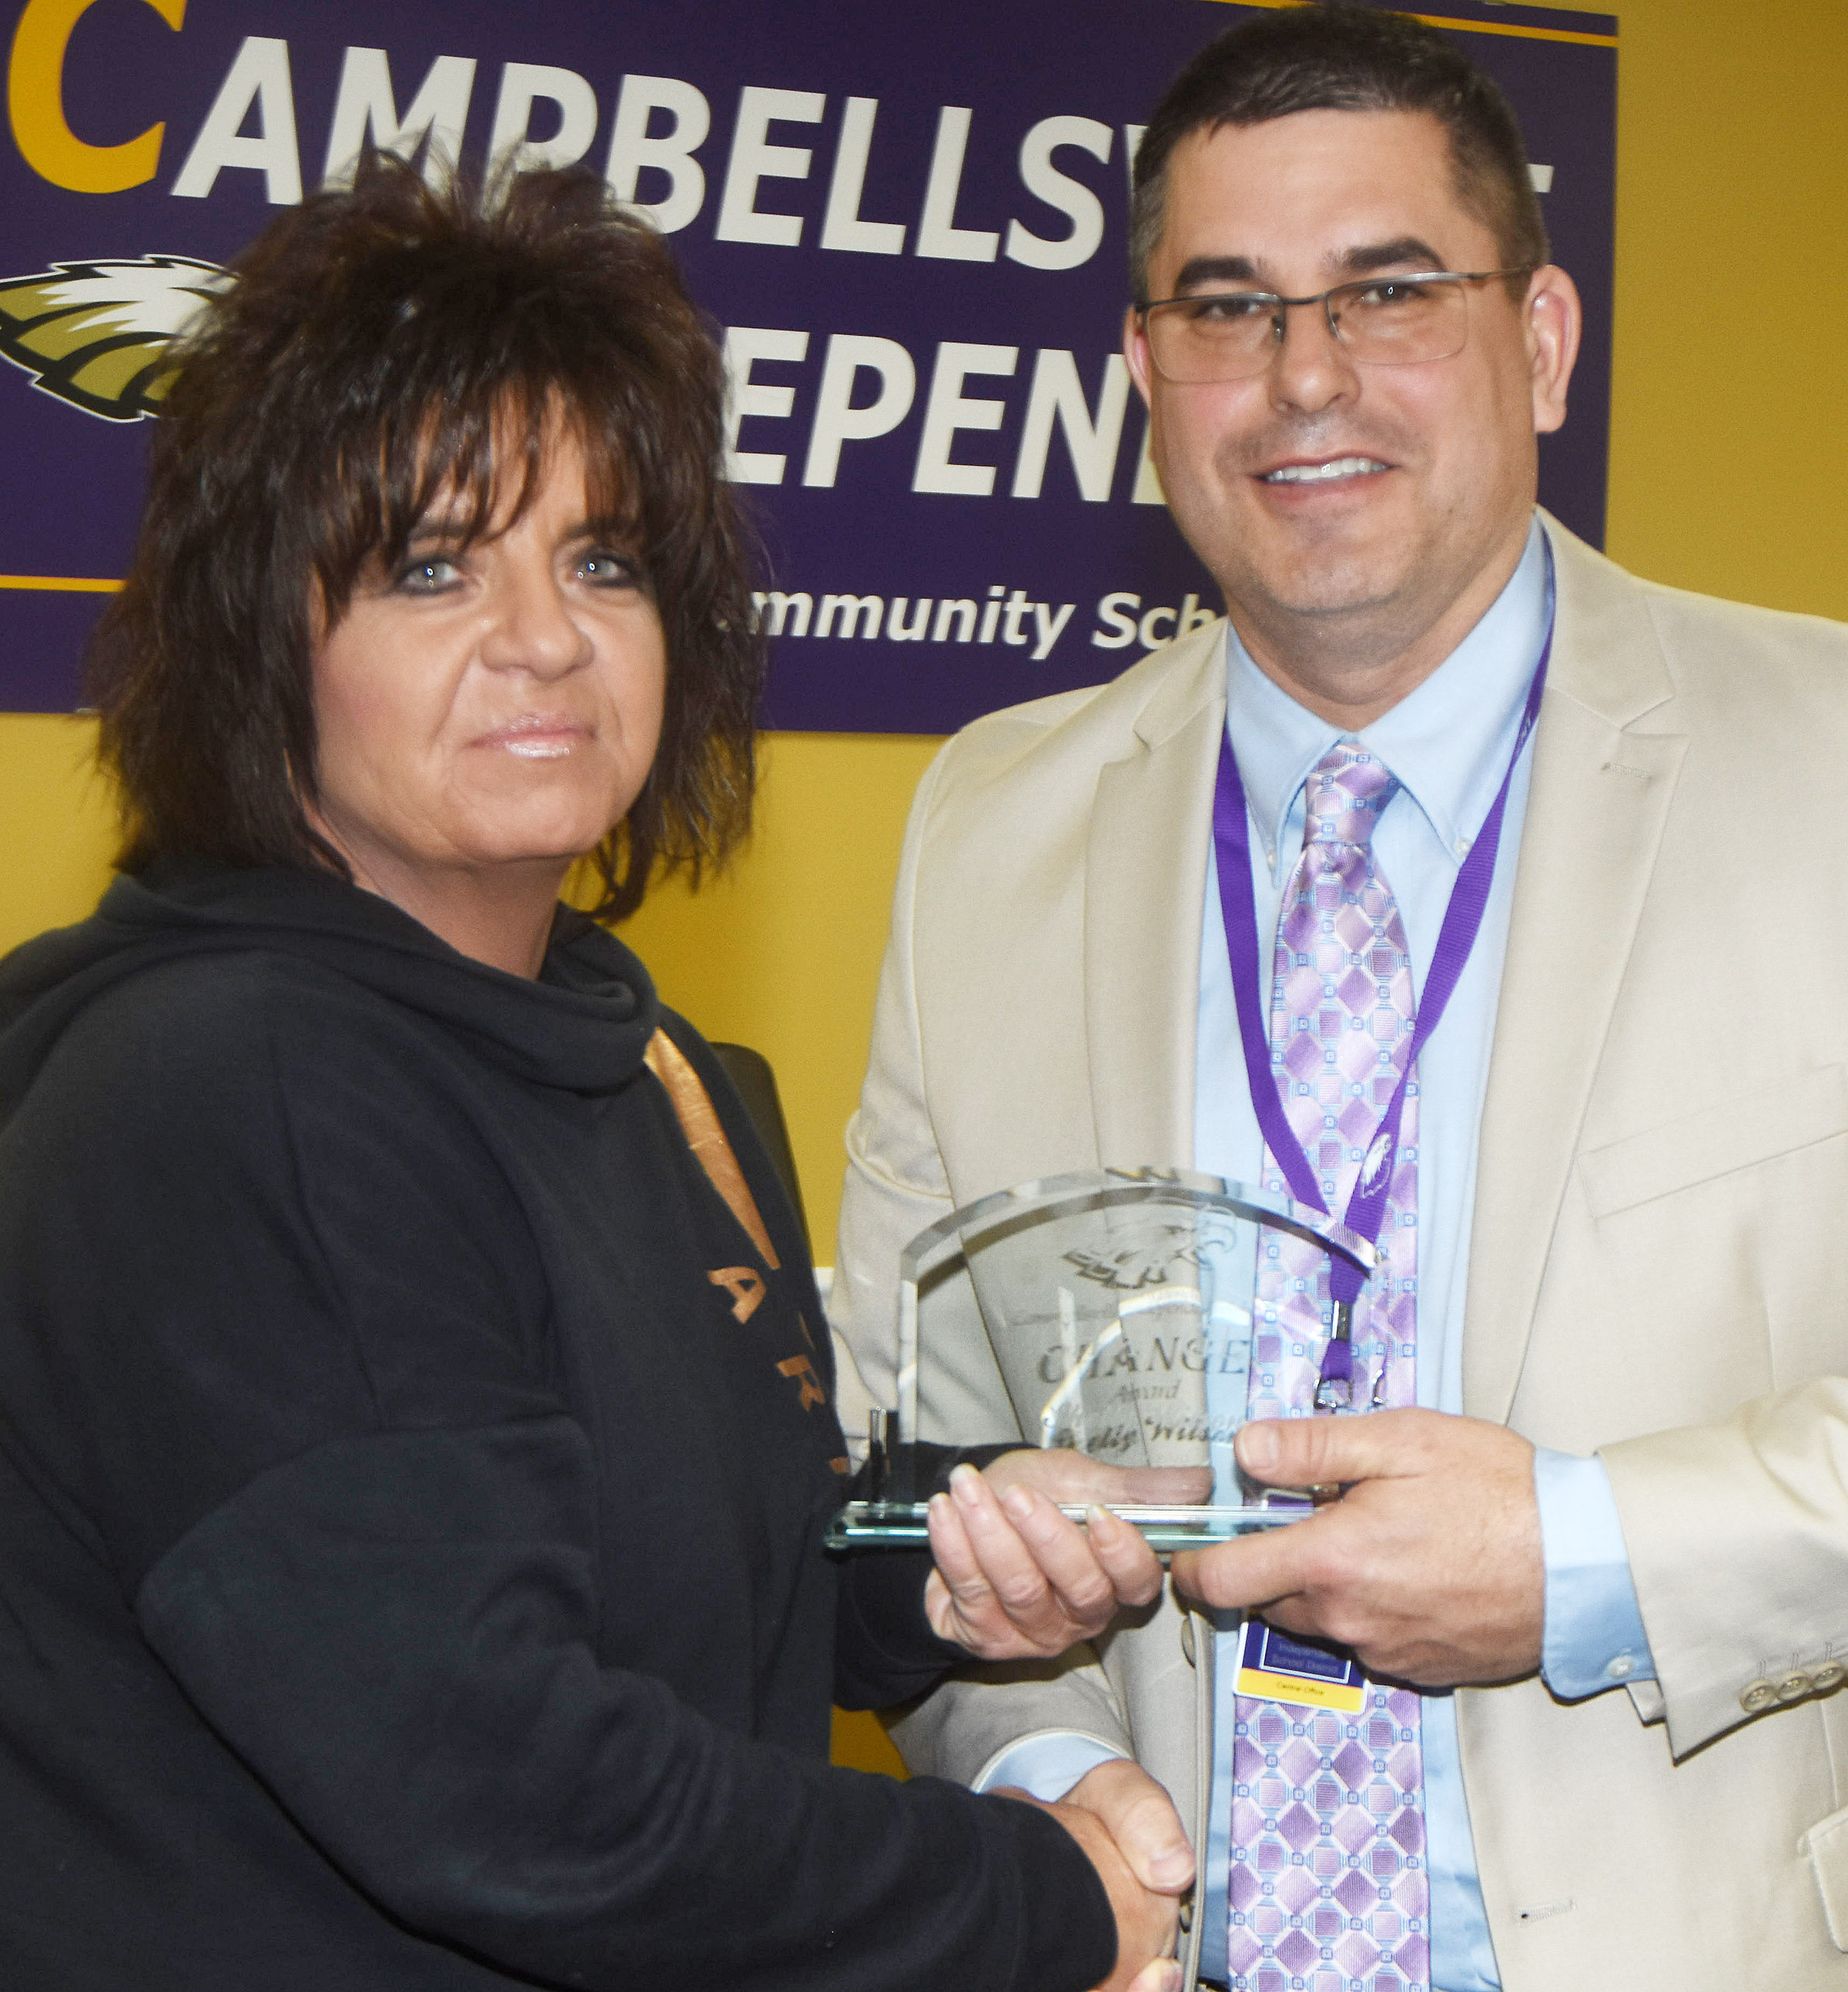 Campbellsville Independent Schools Superintendent Kirby Smith honors CES Cafeteria Manager Shelly Wilson with the classified Change Award.